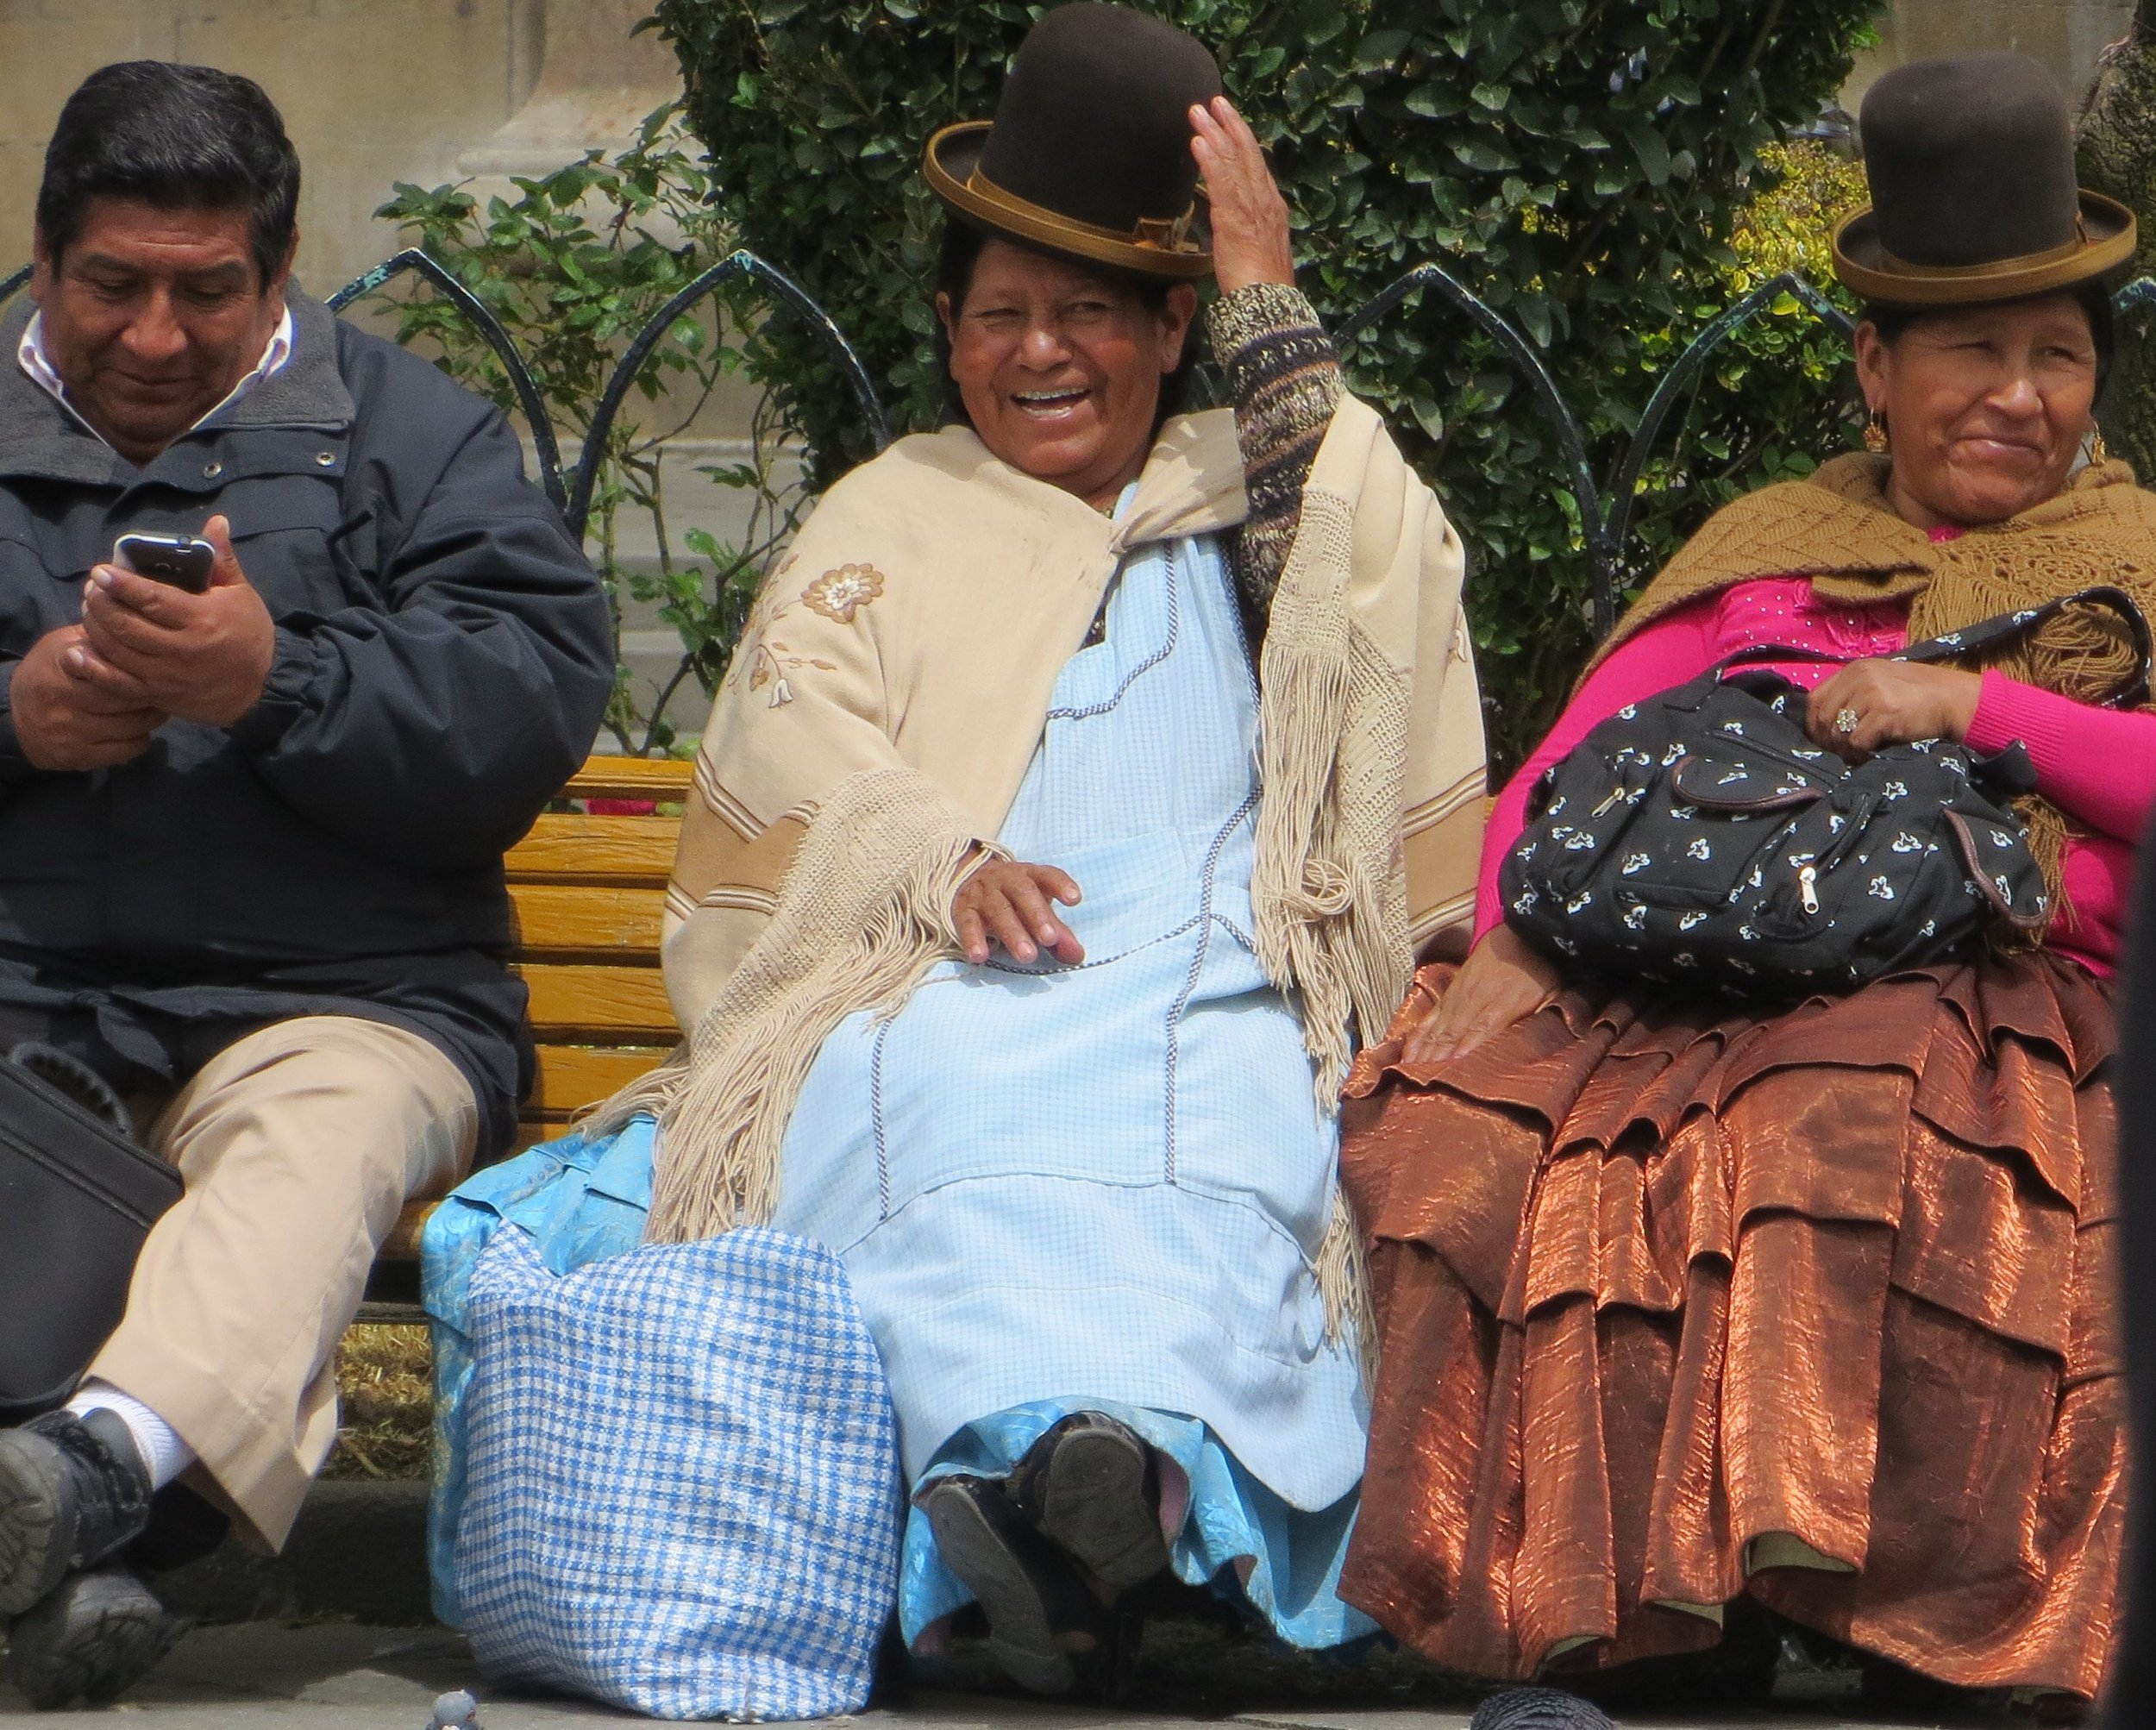 The Study Missions - are innovative, rigorous programs for students who are dedicated to serious study and to changing their ideas about the world. Come join us and see how far the road will take you.La Paz, Bolivia